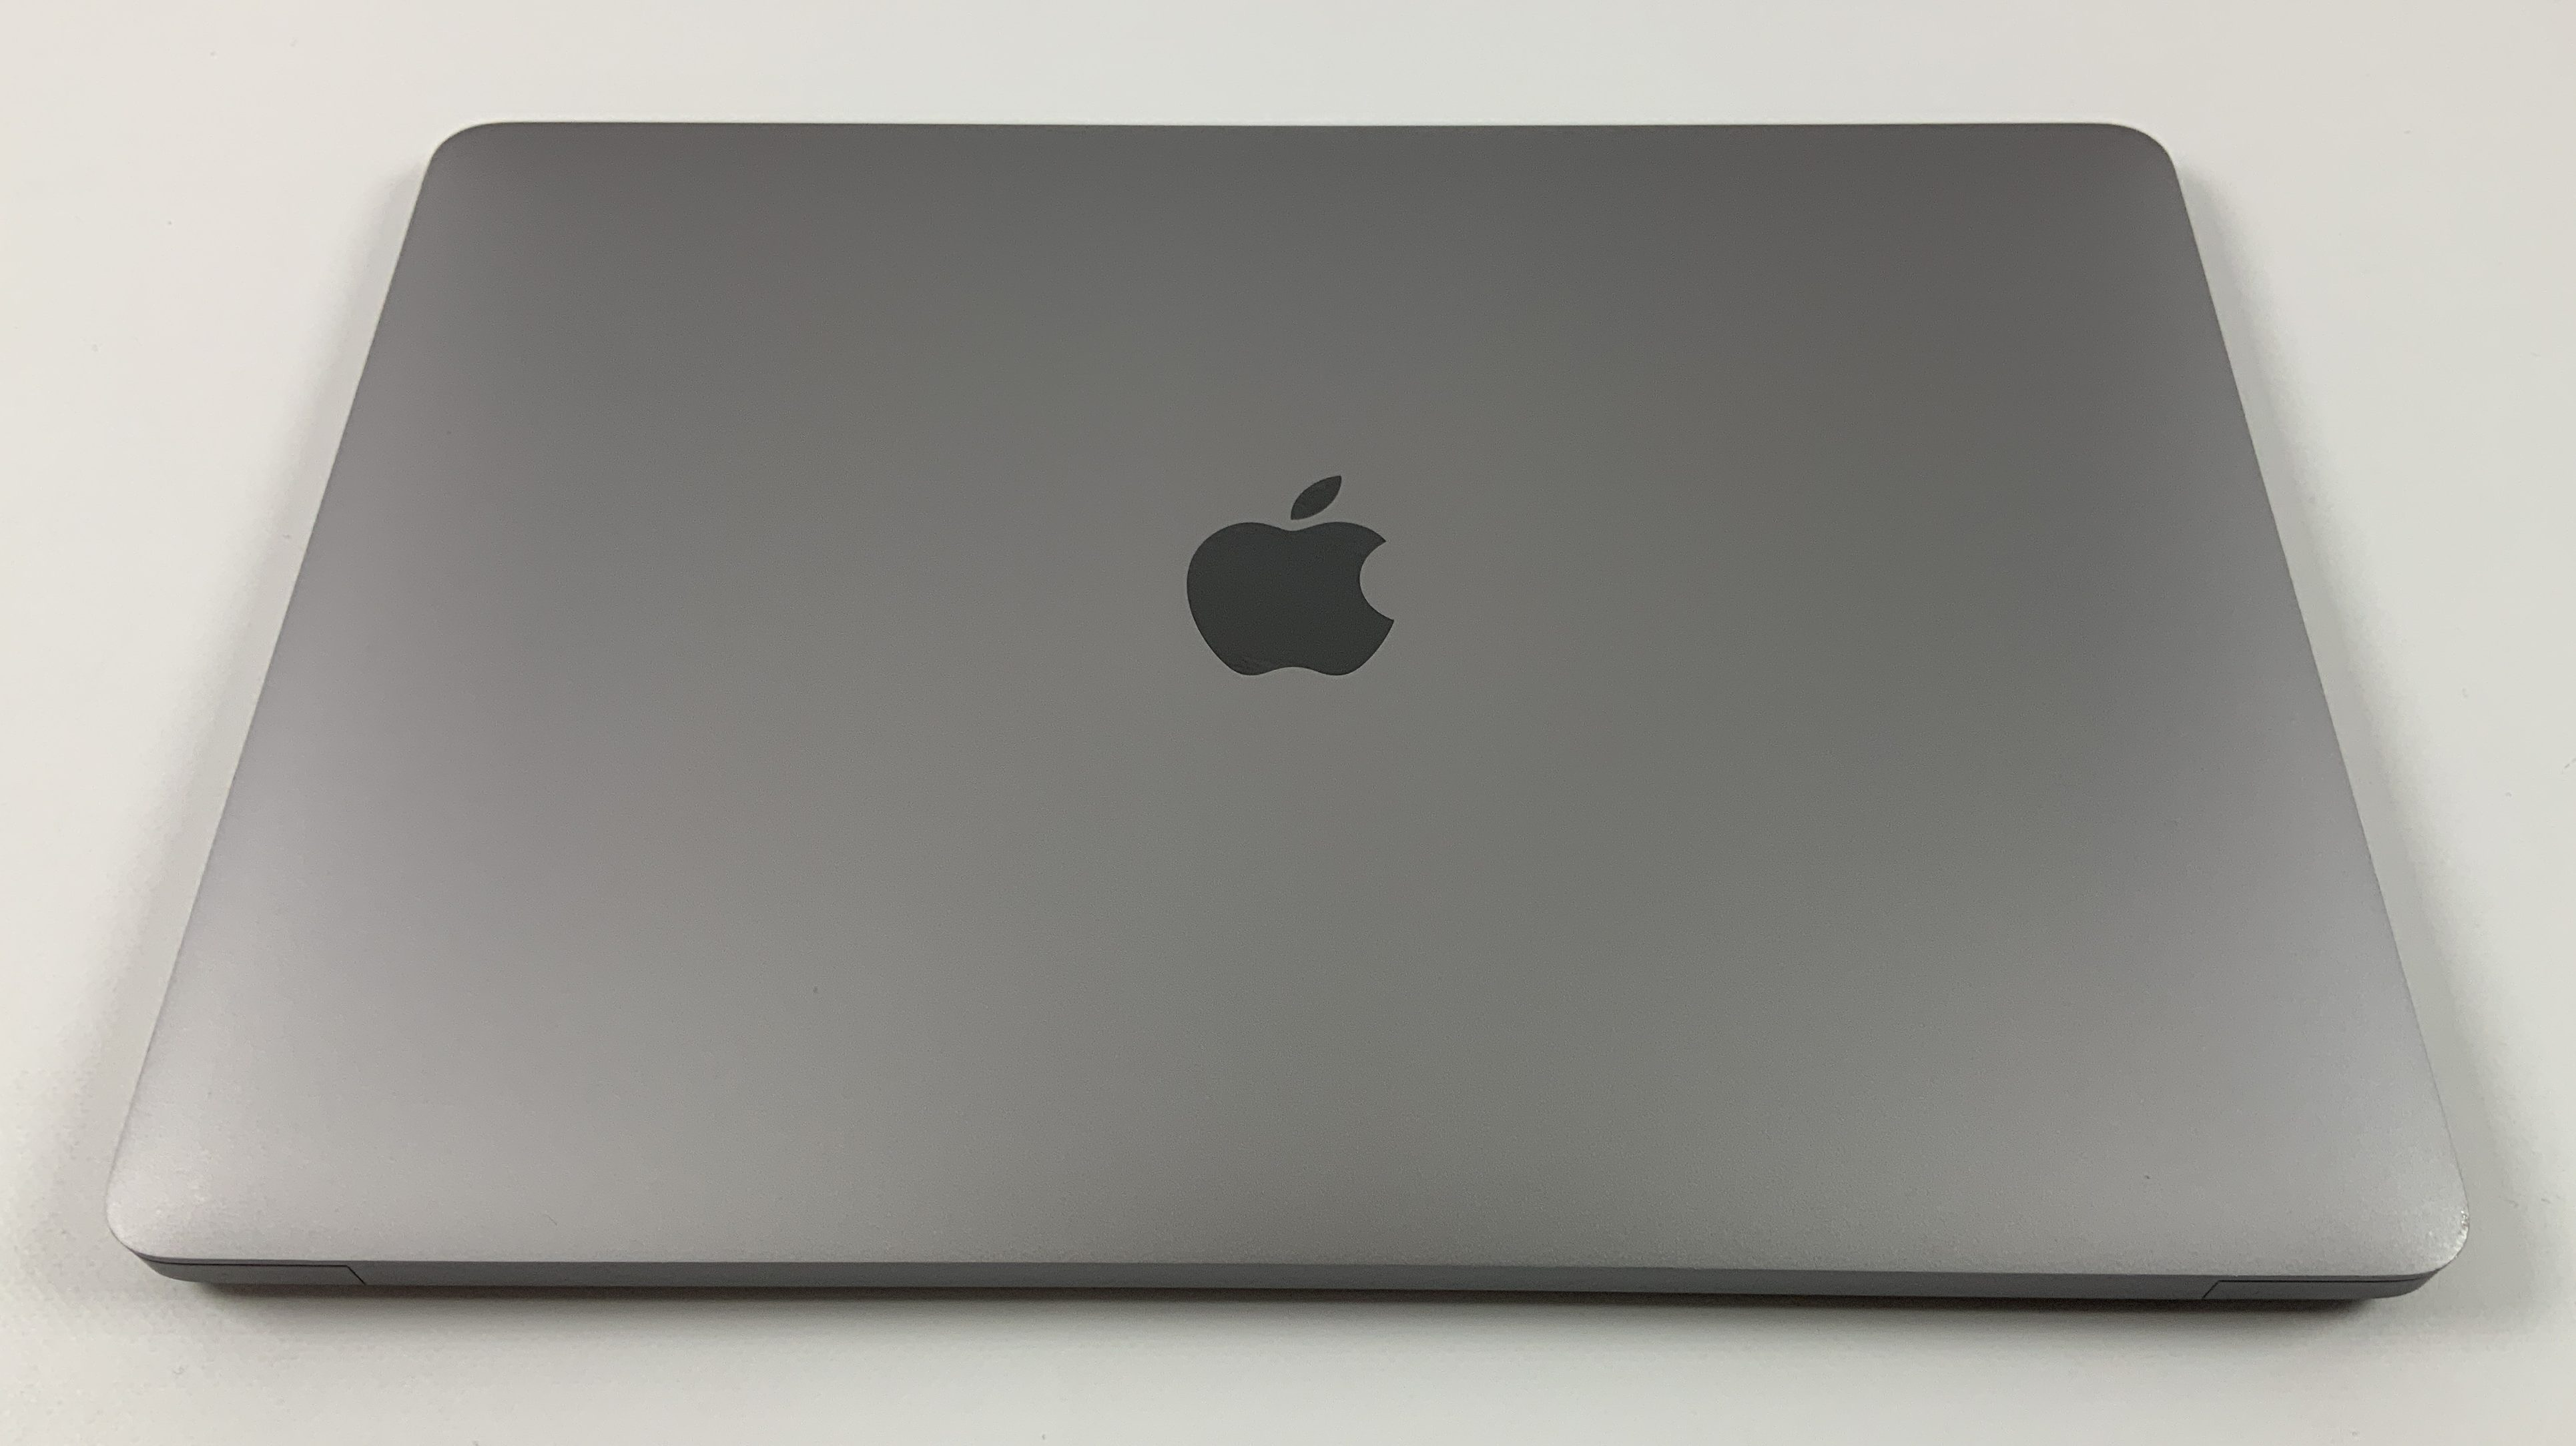 "MacBook Air 13"" Late 2018 (Intel Core i5 1.6 GHz 8 GB RAM 512 GB SSD), Space Gray, Intel Core i5 1.6 GHz, 8 GB RAM, 512 GB SSD, Bild 2"